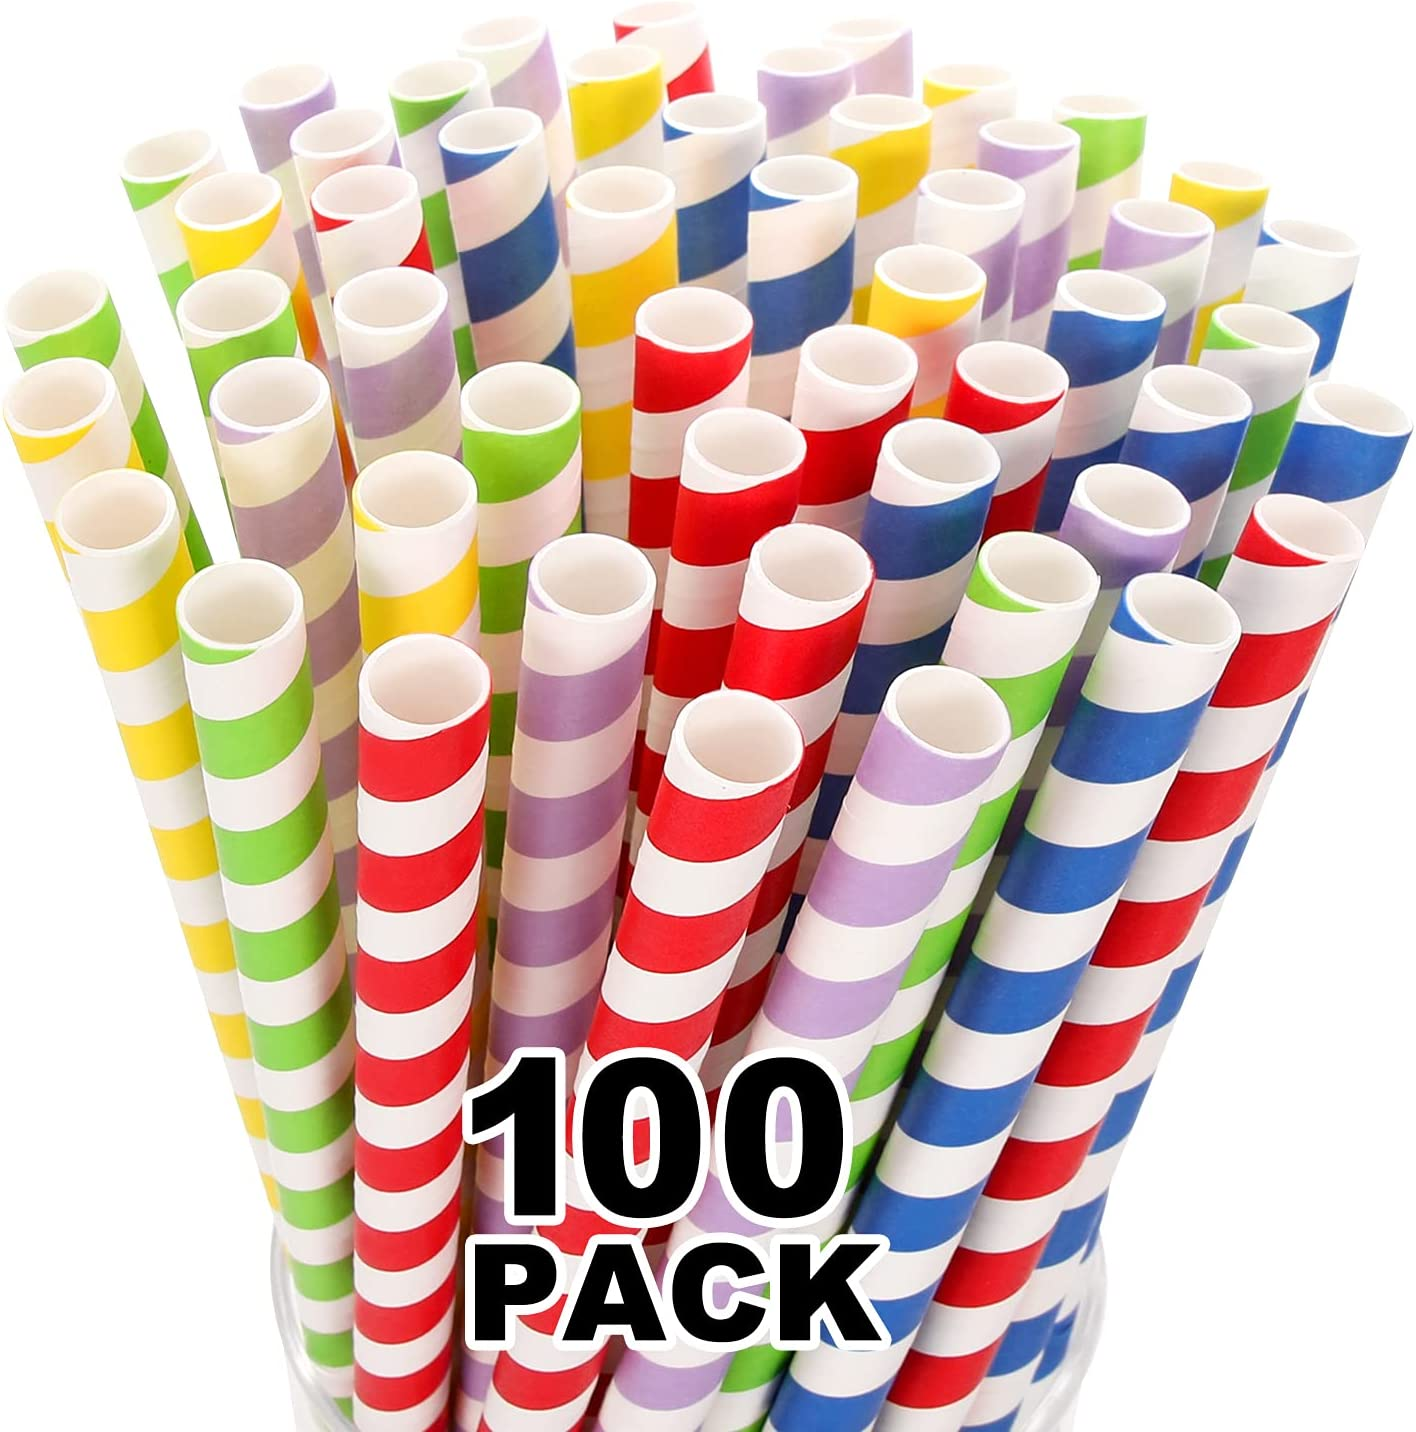 100 Mesa Mall Pack Extra Wide Paper Smoothie Baltimore Mall - 10 mm Bi Boba Straws